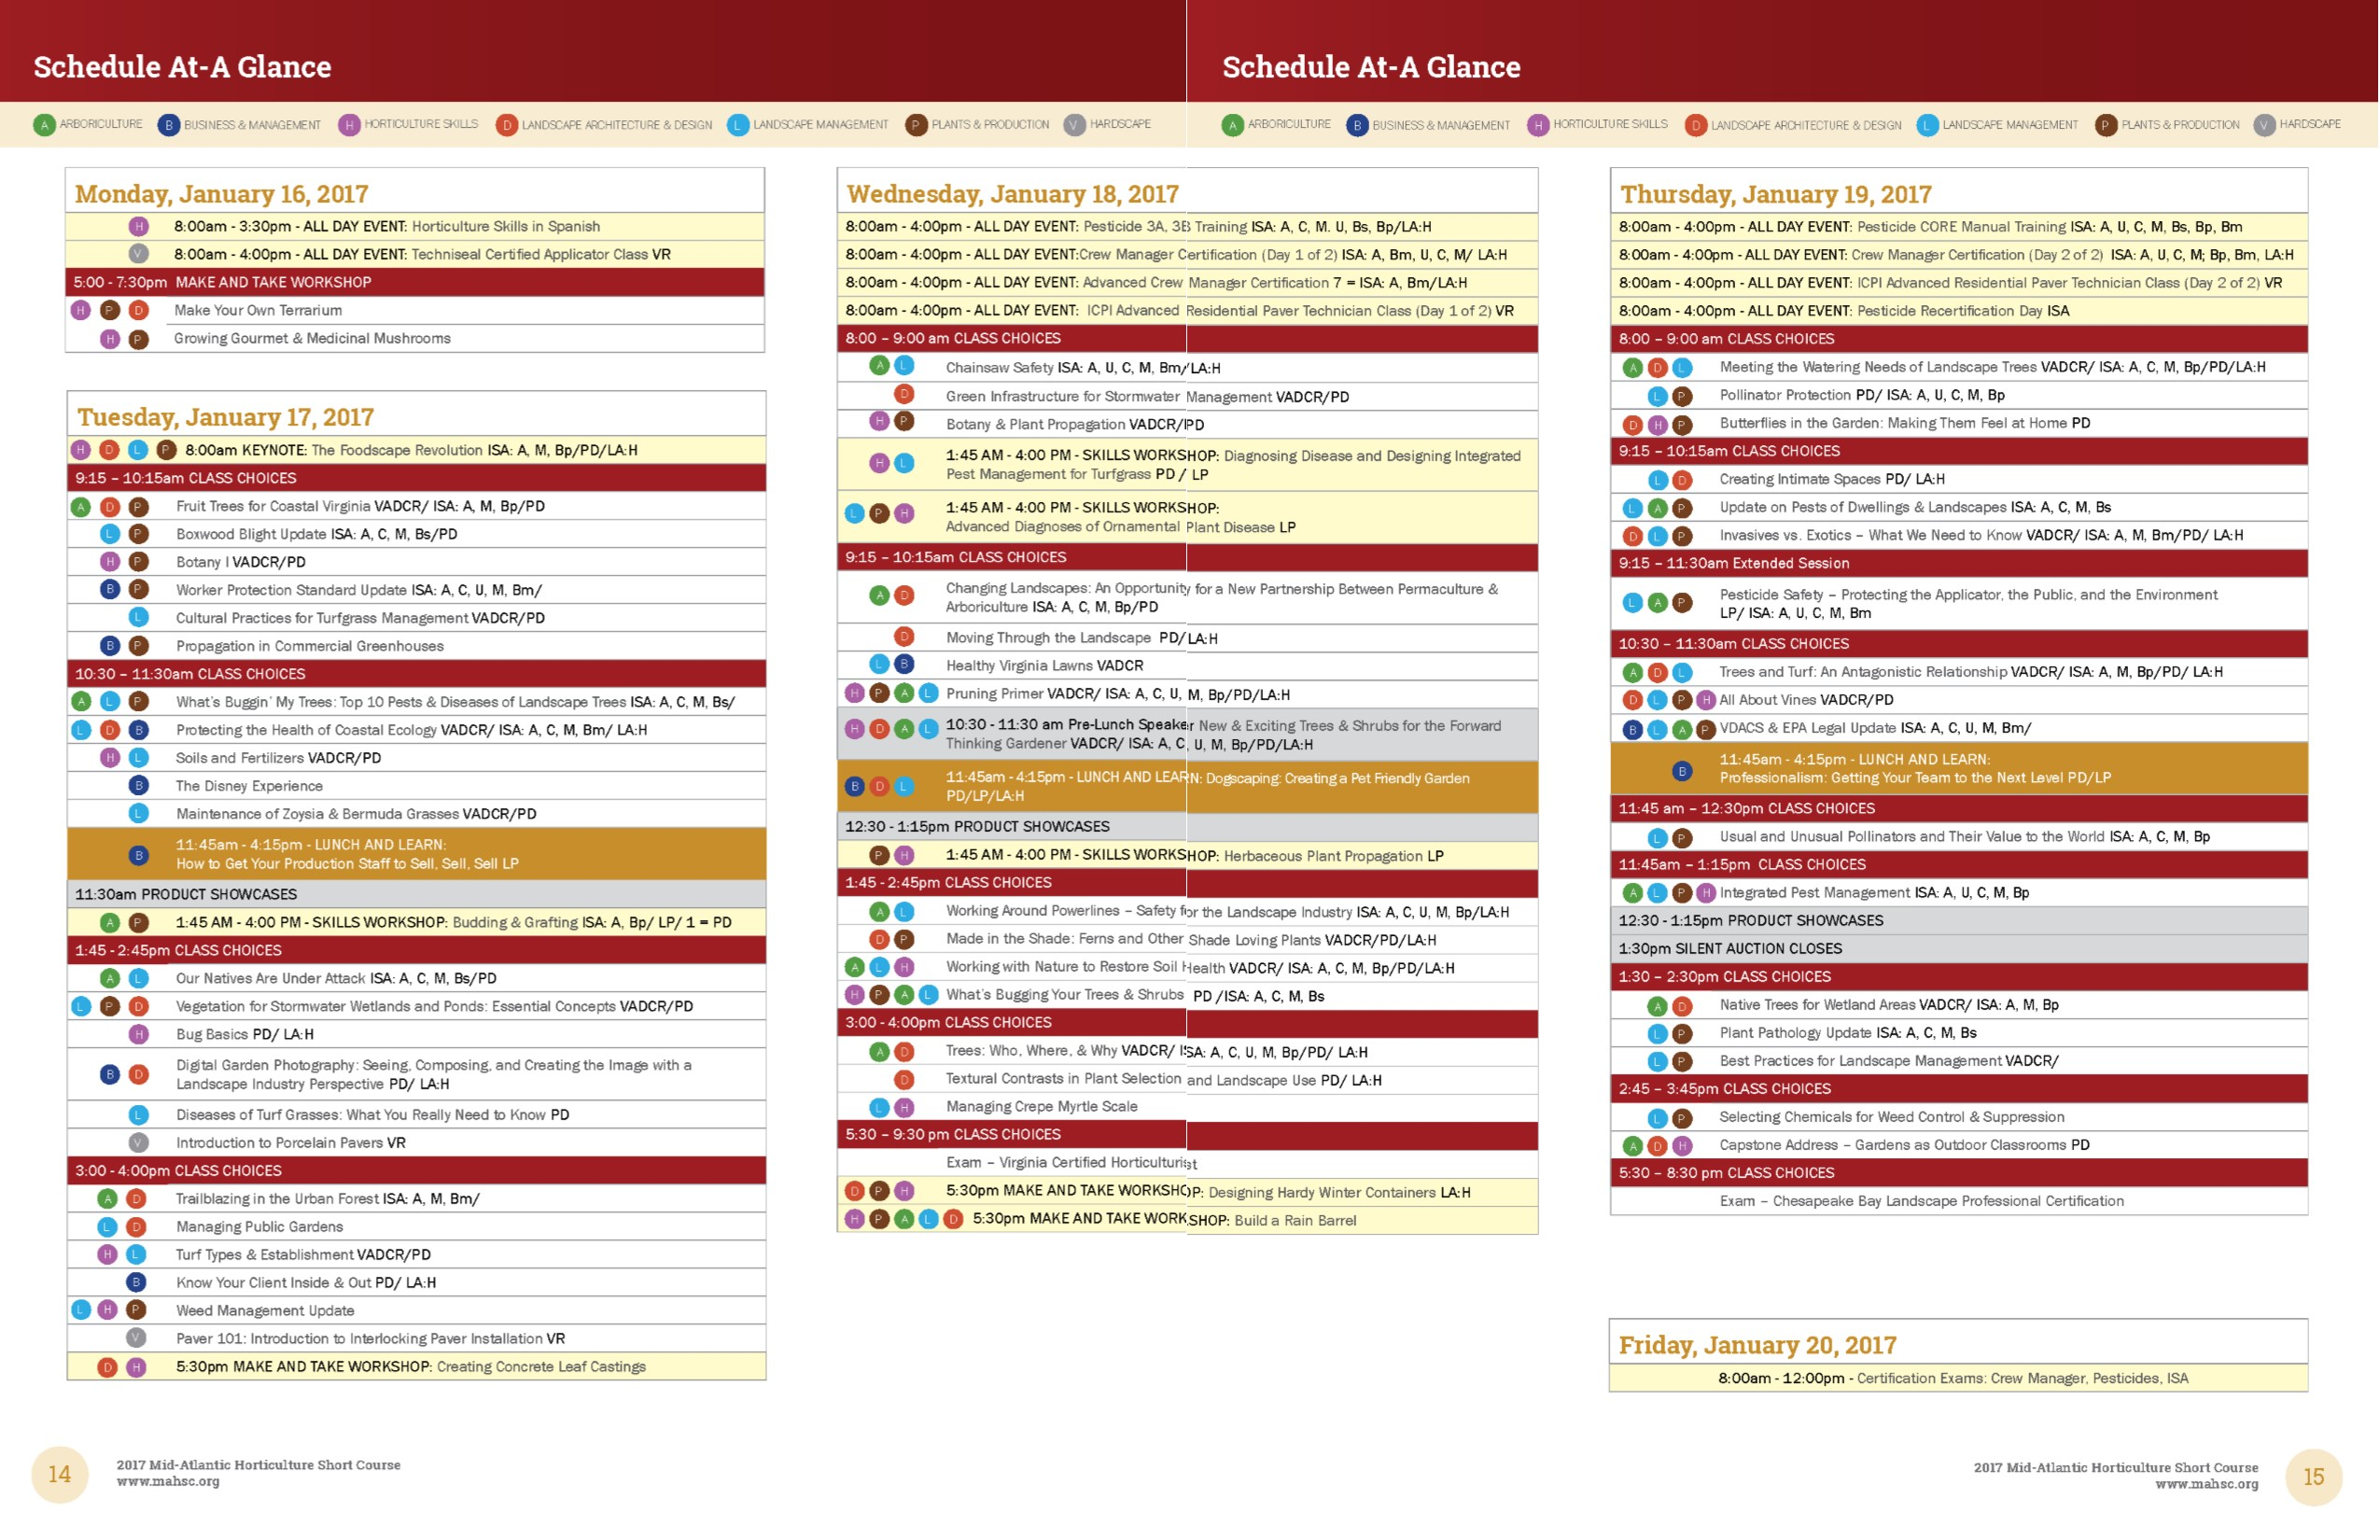 at-a-glance-schedule